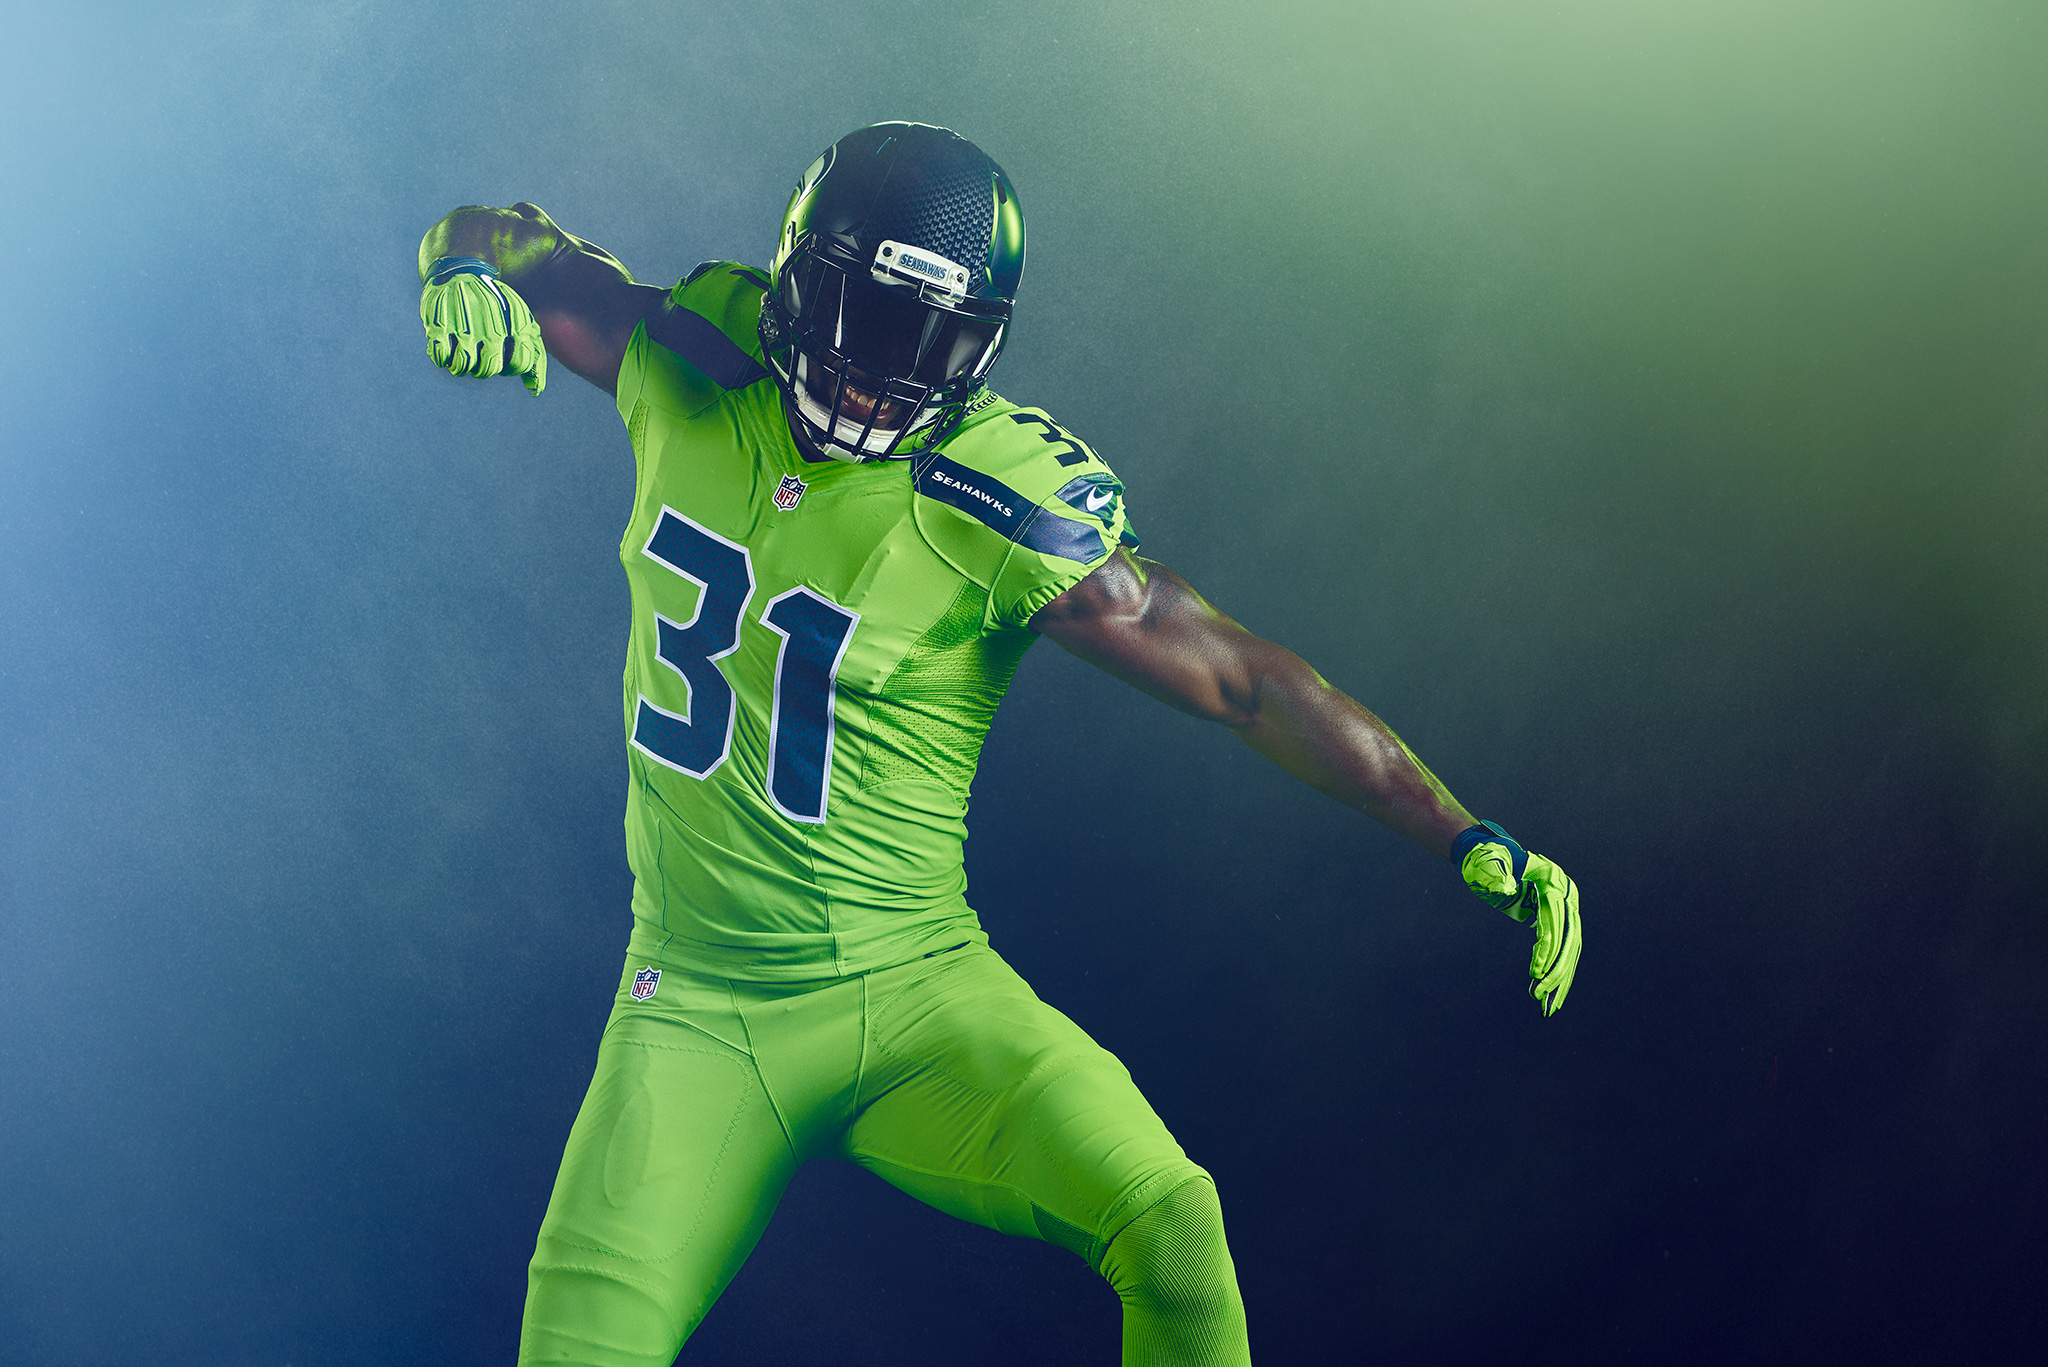 Kam Chancellor | Seattle Seahawks